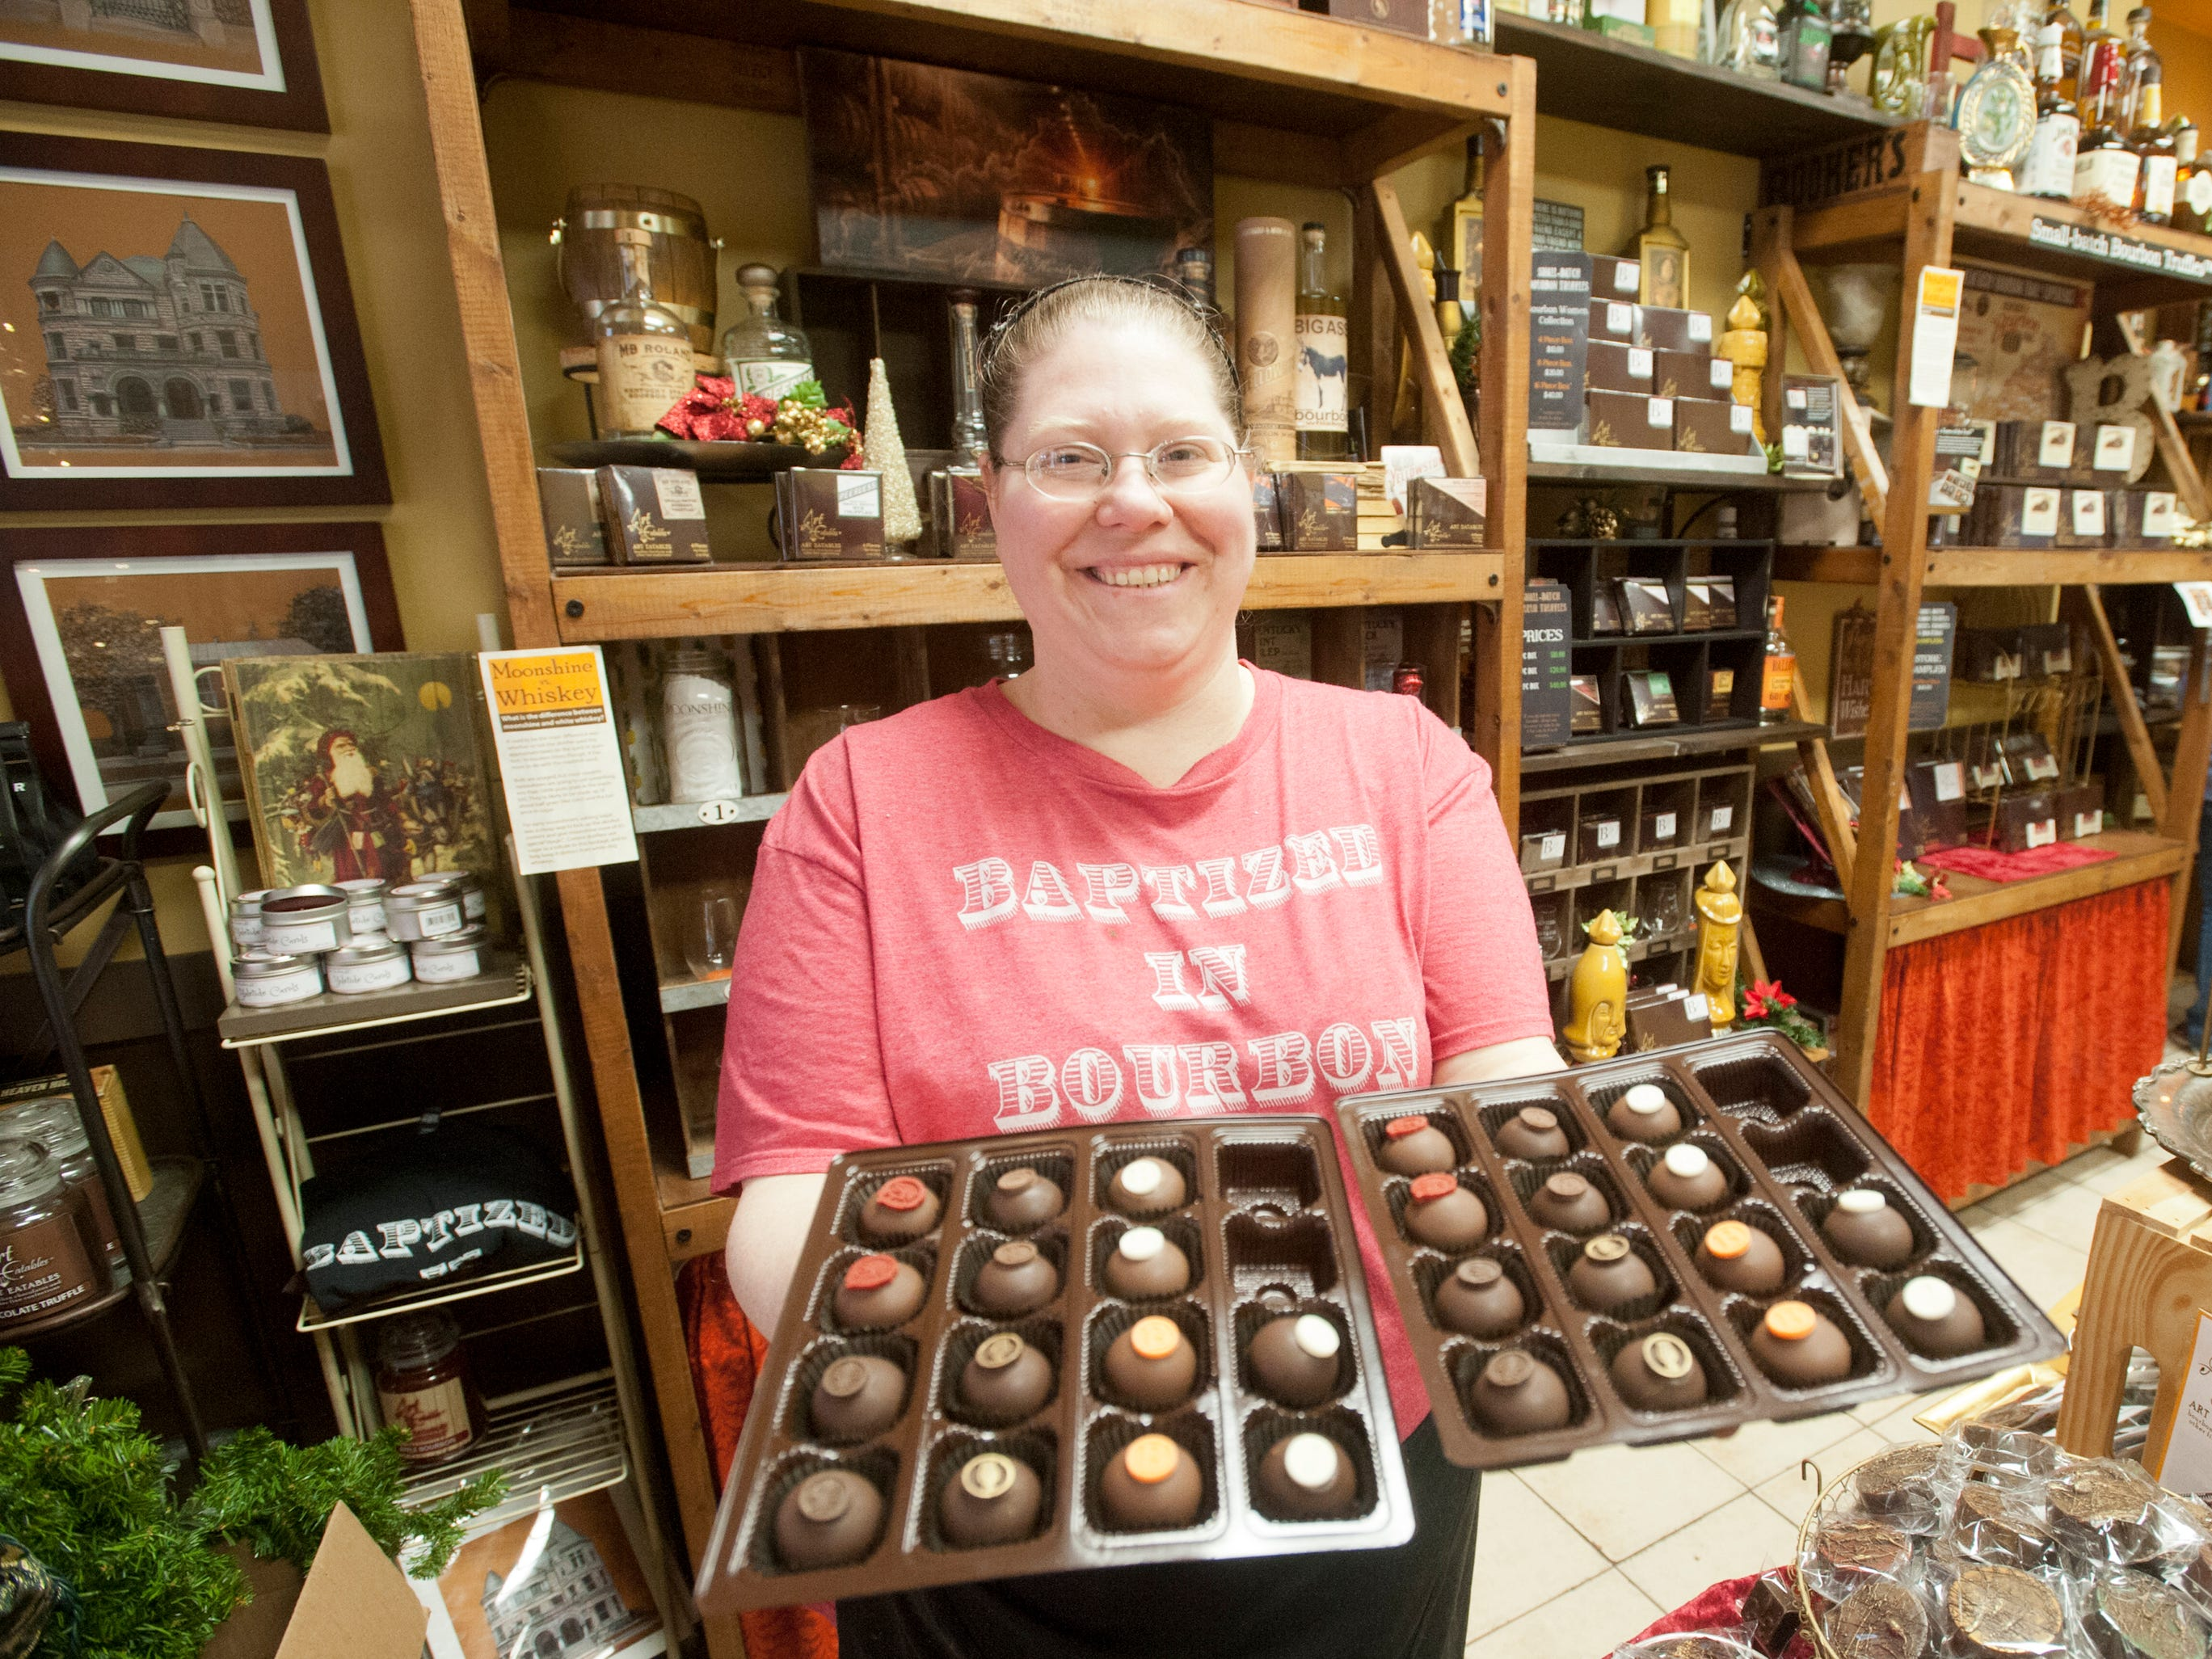 Kelly Ramsey, bourbon-certified chef and owner of Art Edibles, a bourbon chocolate shop at 631 S. 4th Street, displays some of her small-batch bourbon truffles during Louisville's Small Business Saturday. 24 November 2018